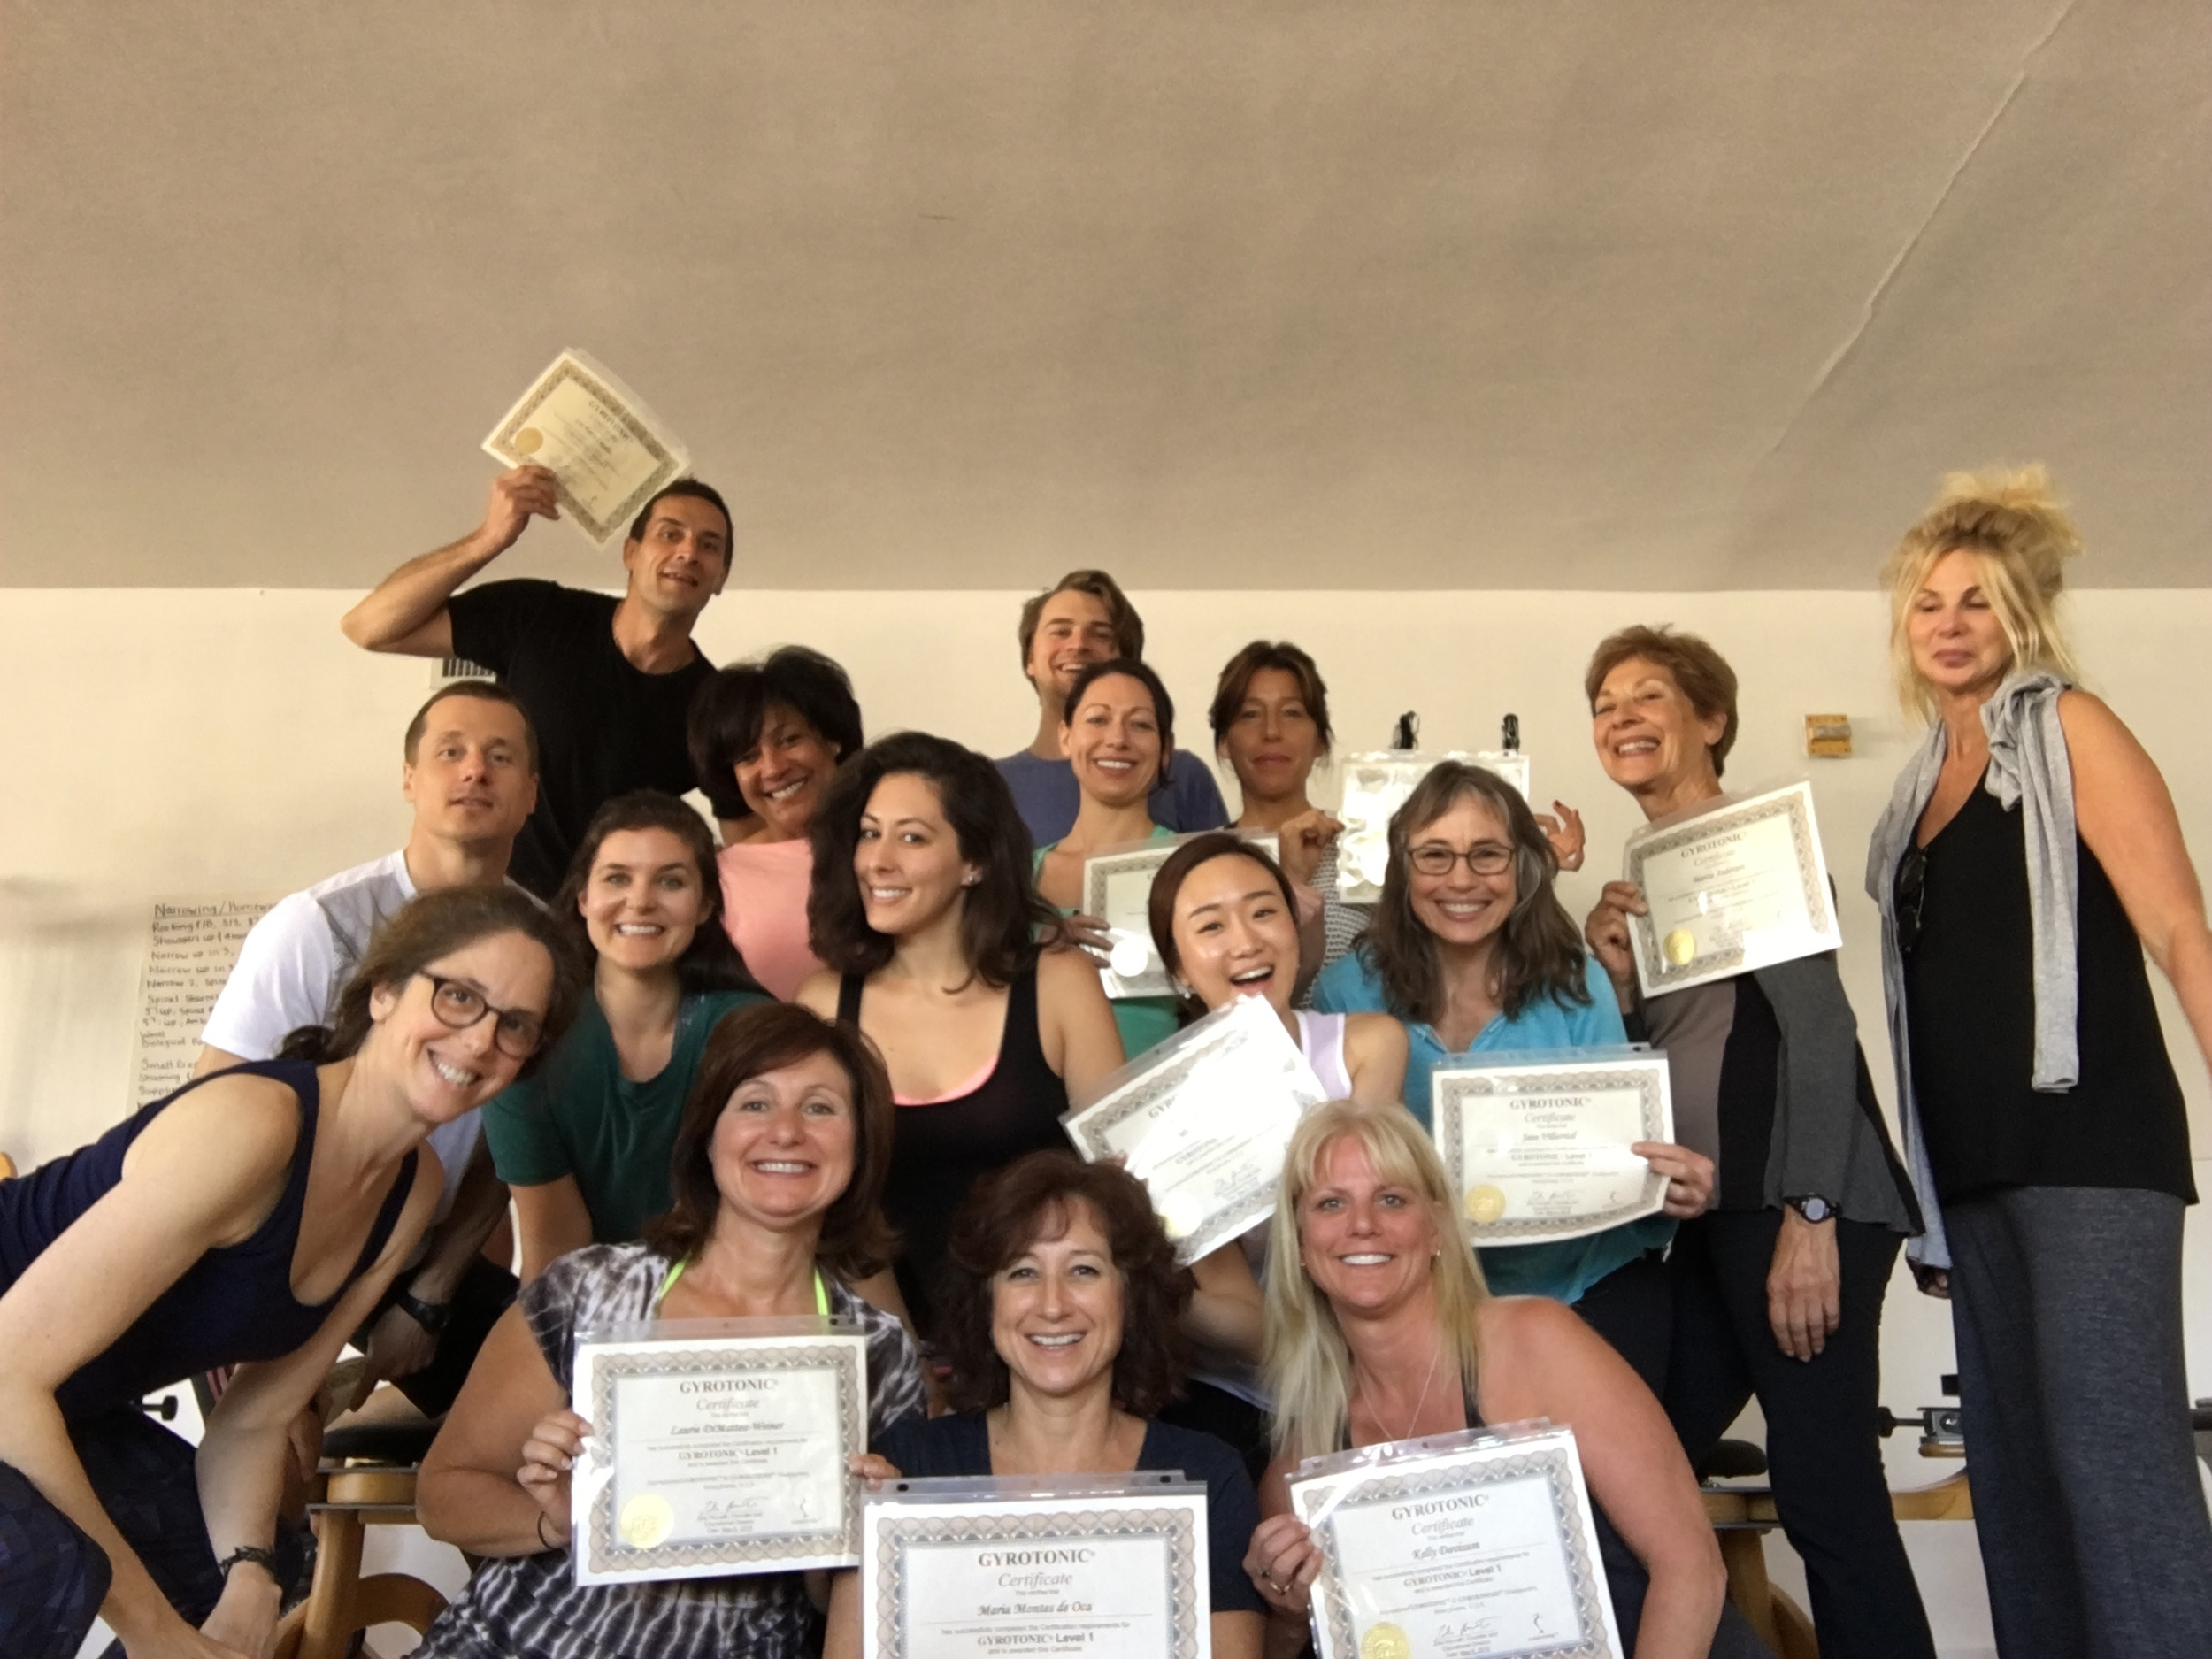 Very excited group of newly certified GYROTONIC® trainers